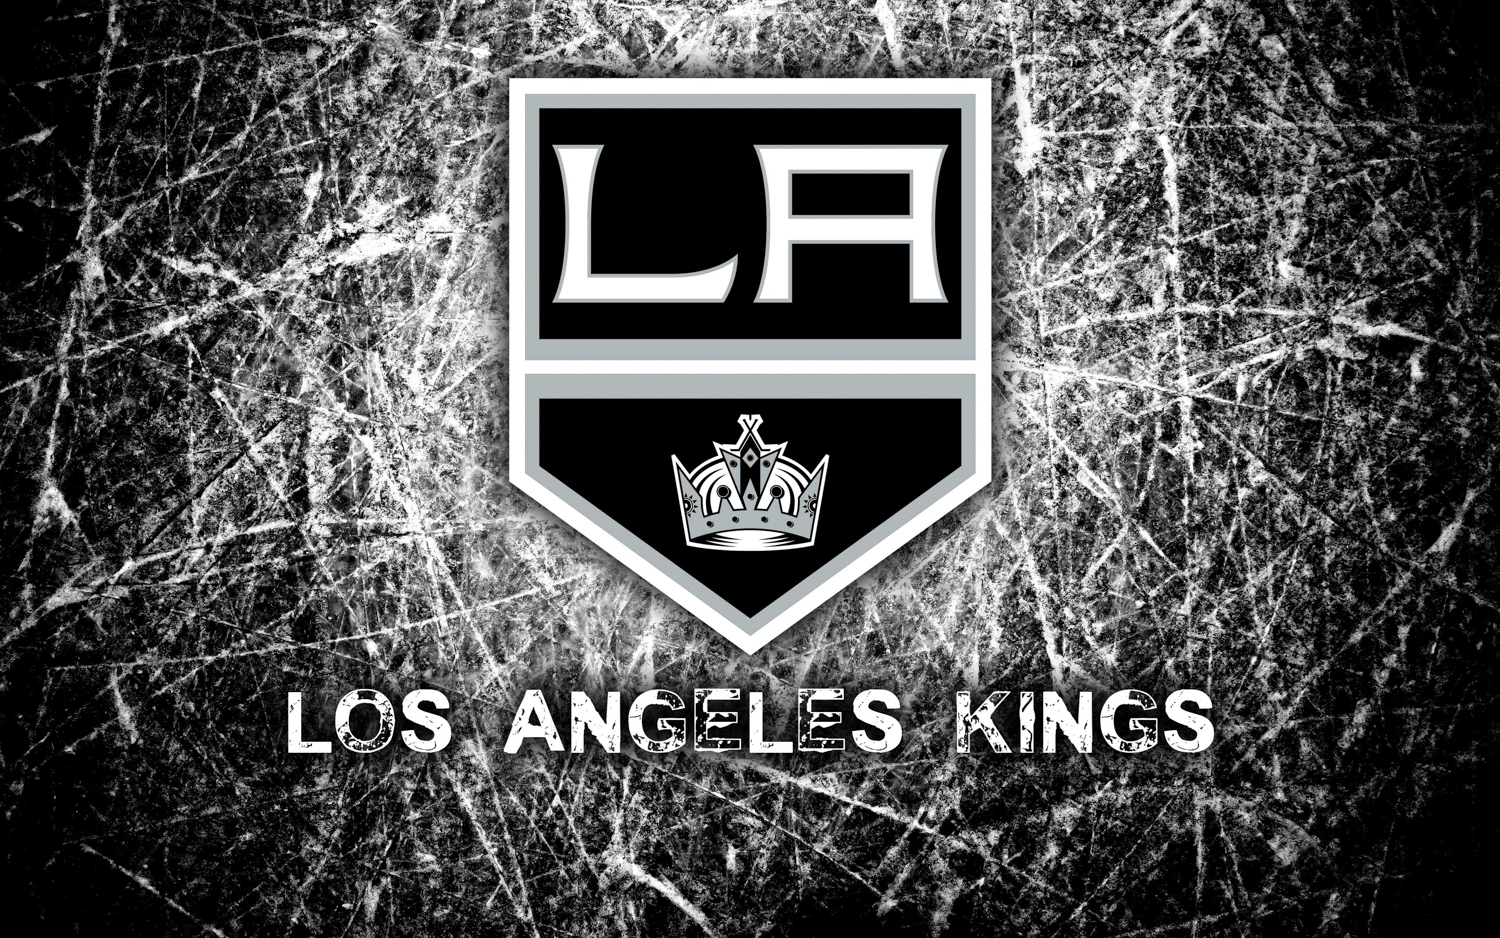 The Official Realtors of the Los Angeles Kings -